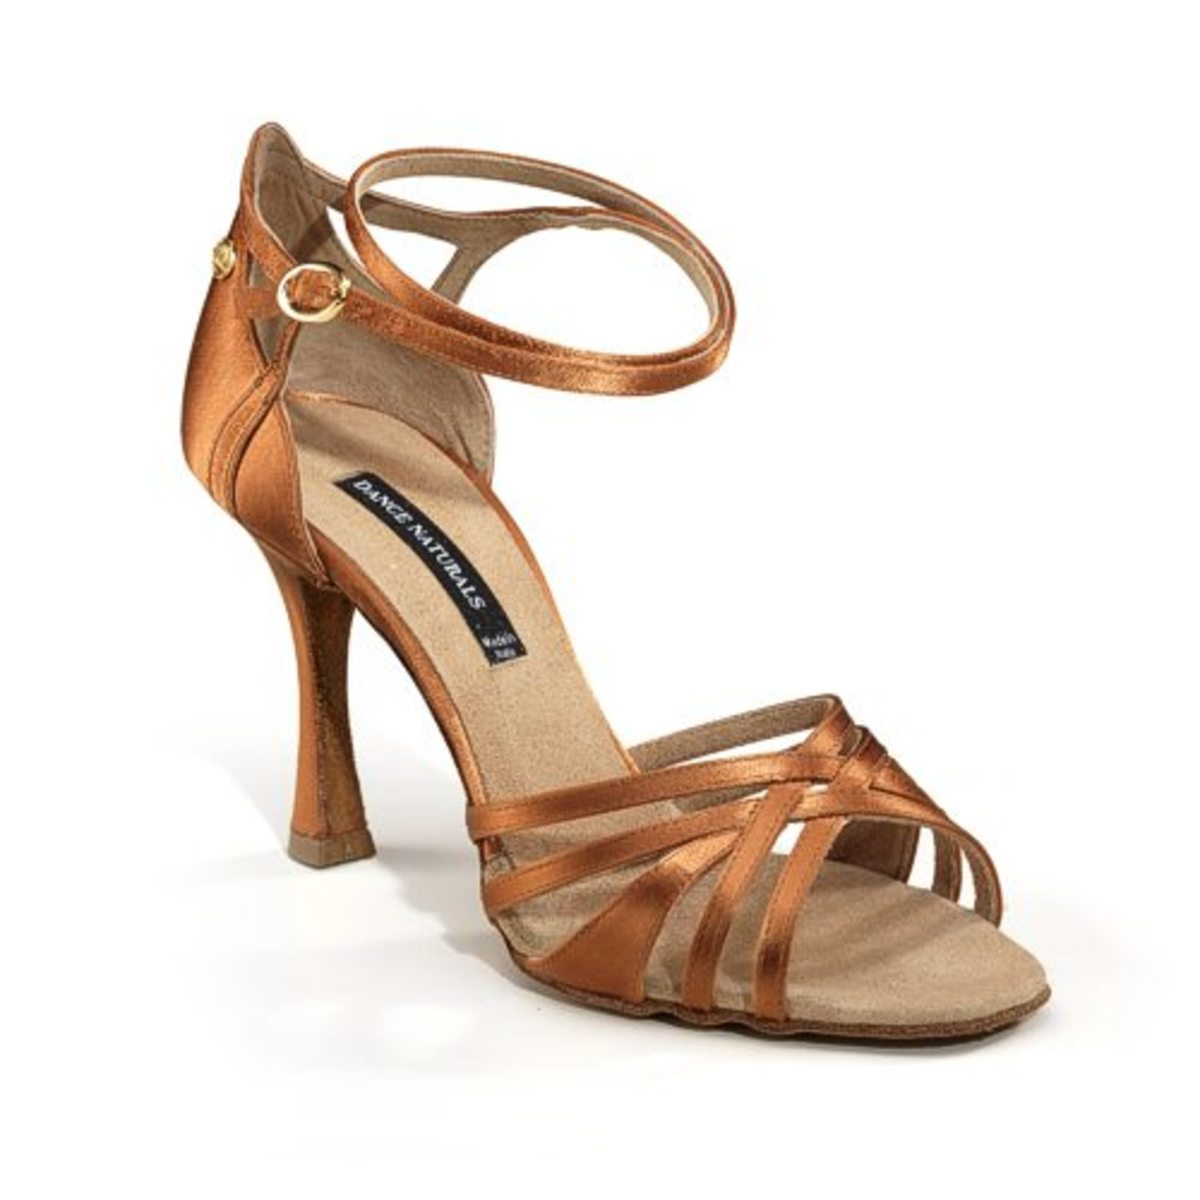 Typical satin beige women's Latin dance shoe